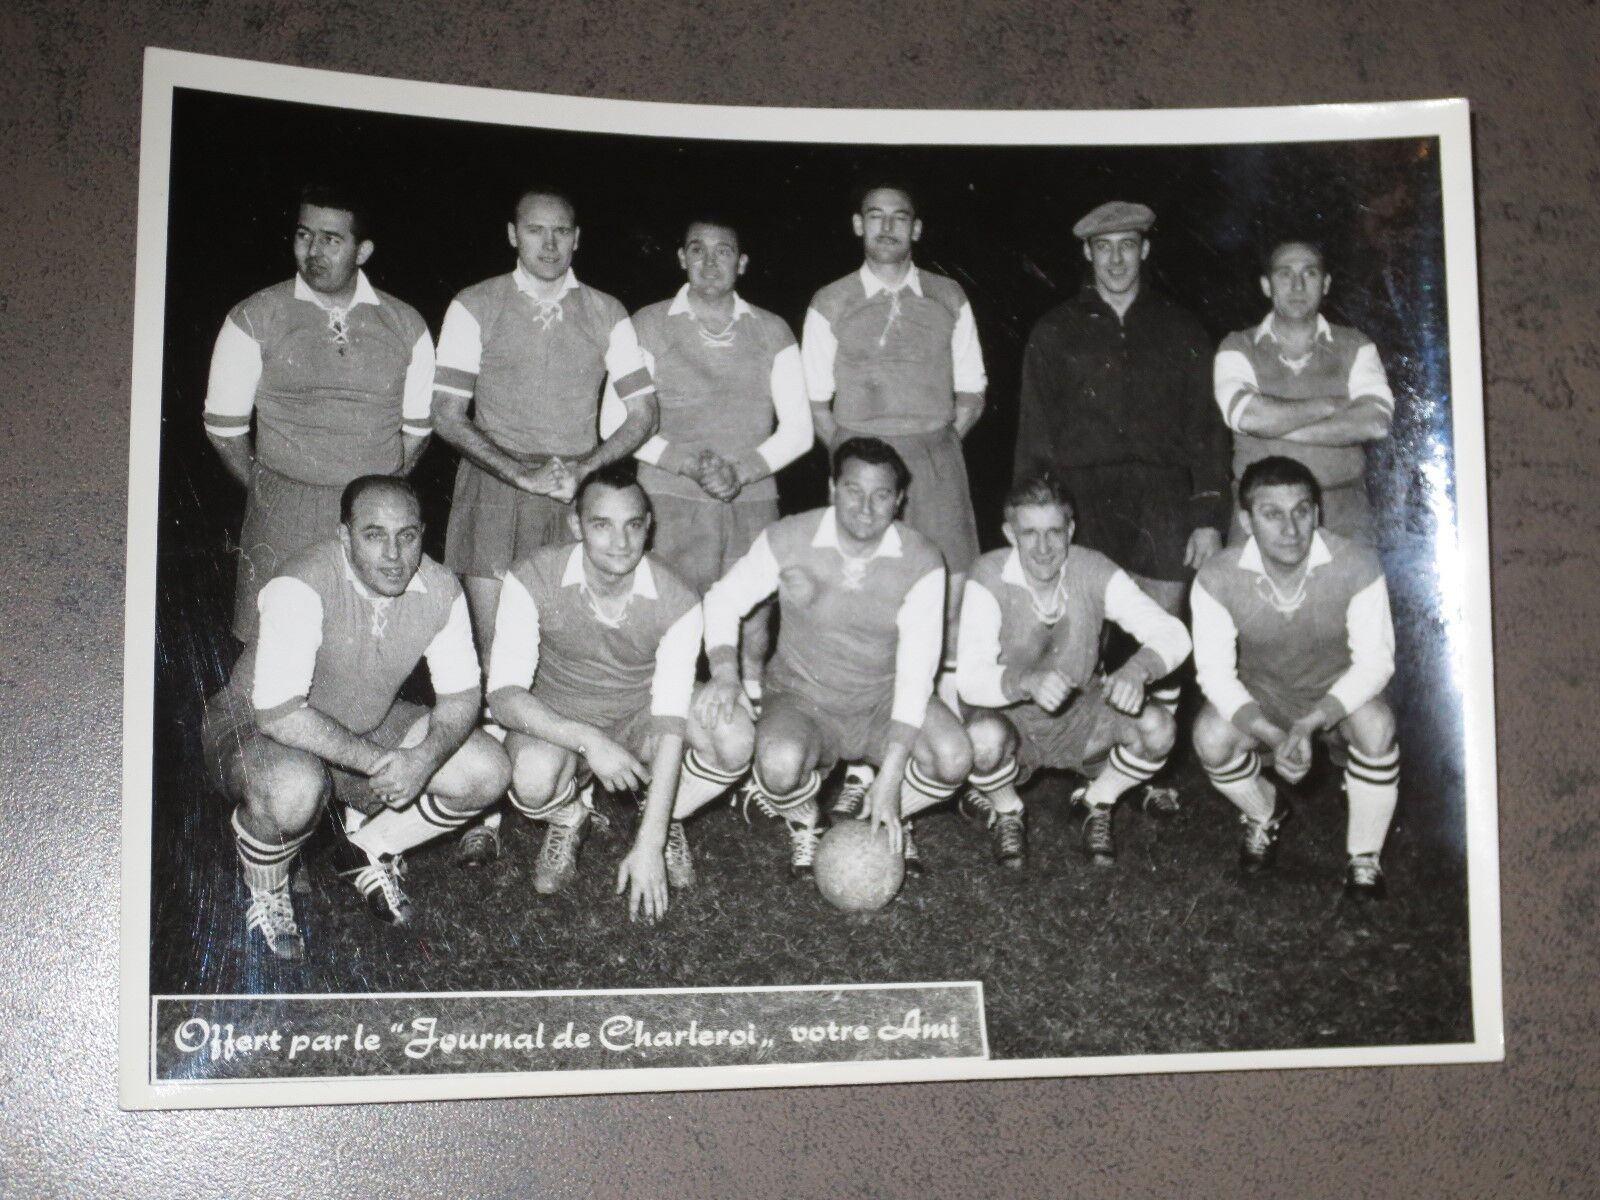 Football Belge Photographie Press ancienne Rare 13 cm sur 17 cm - RSCA